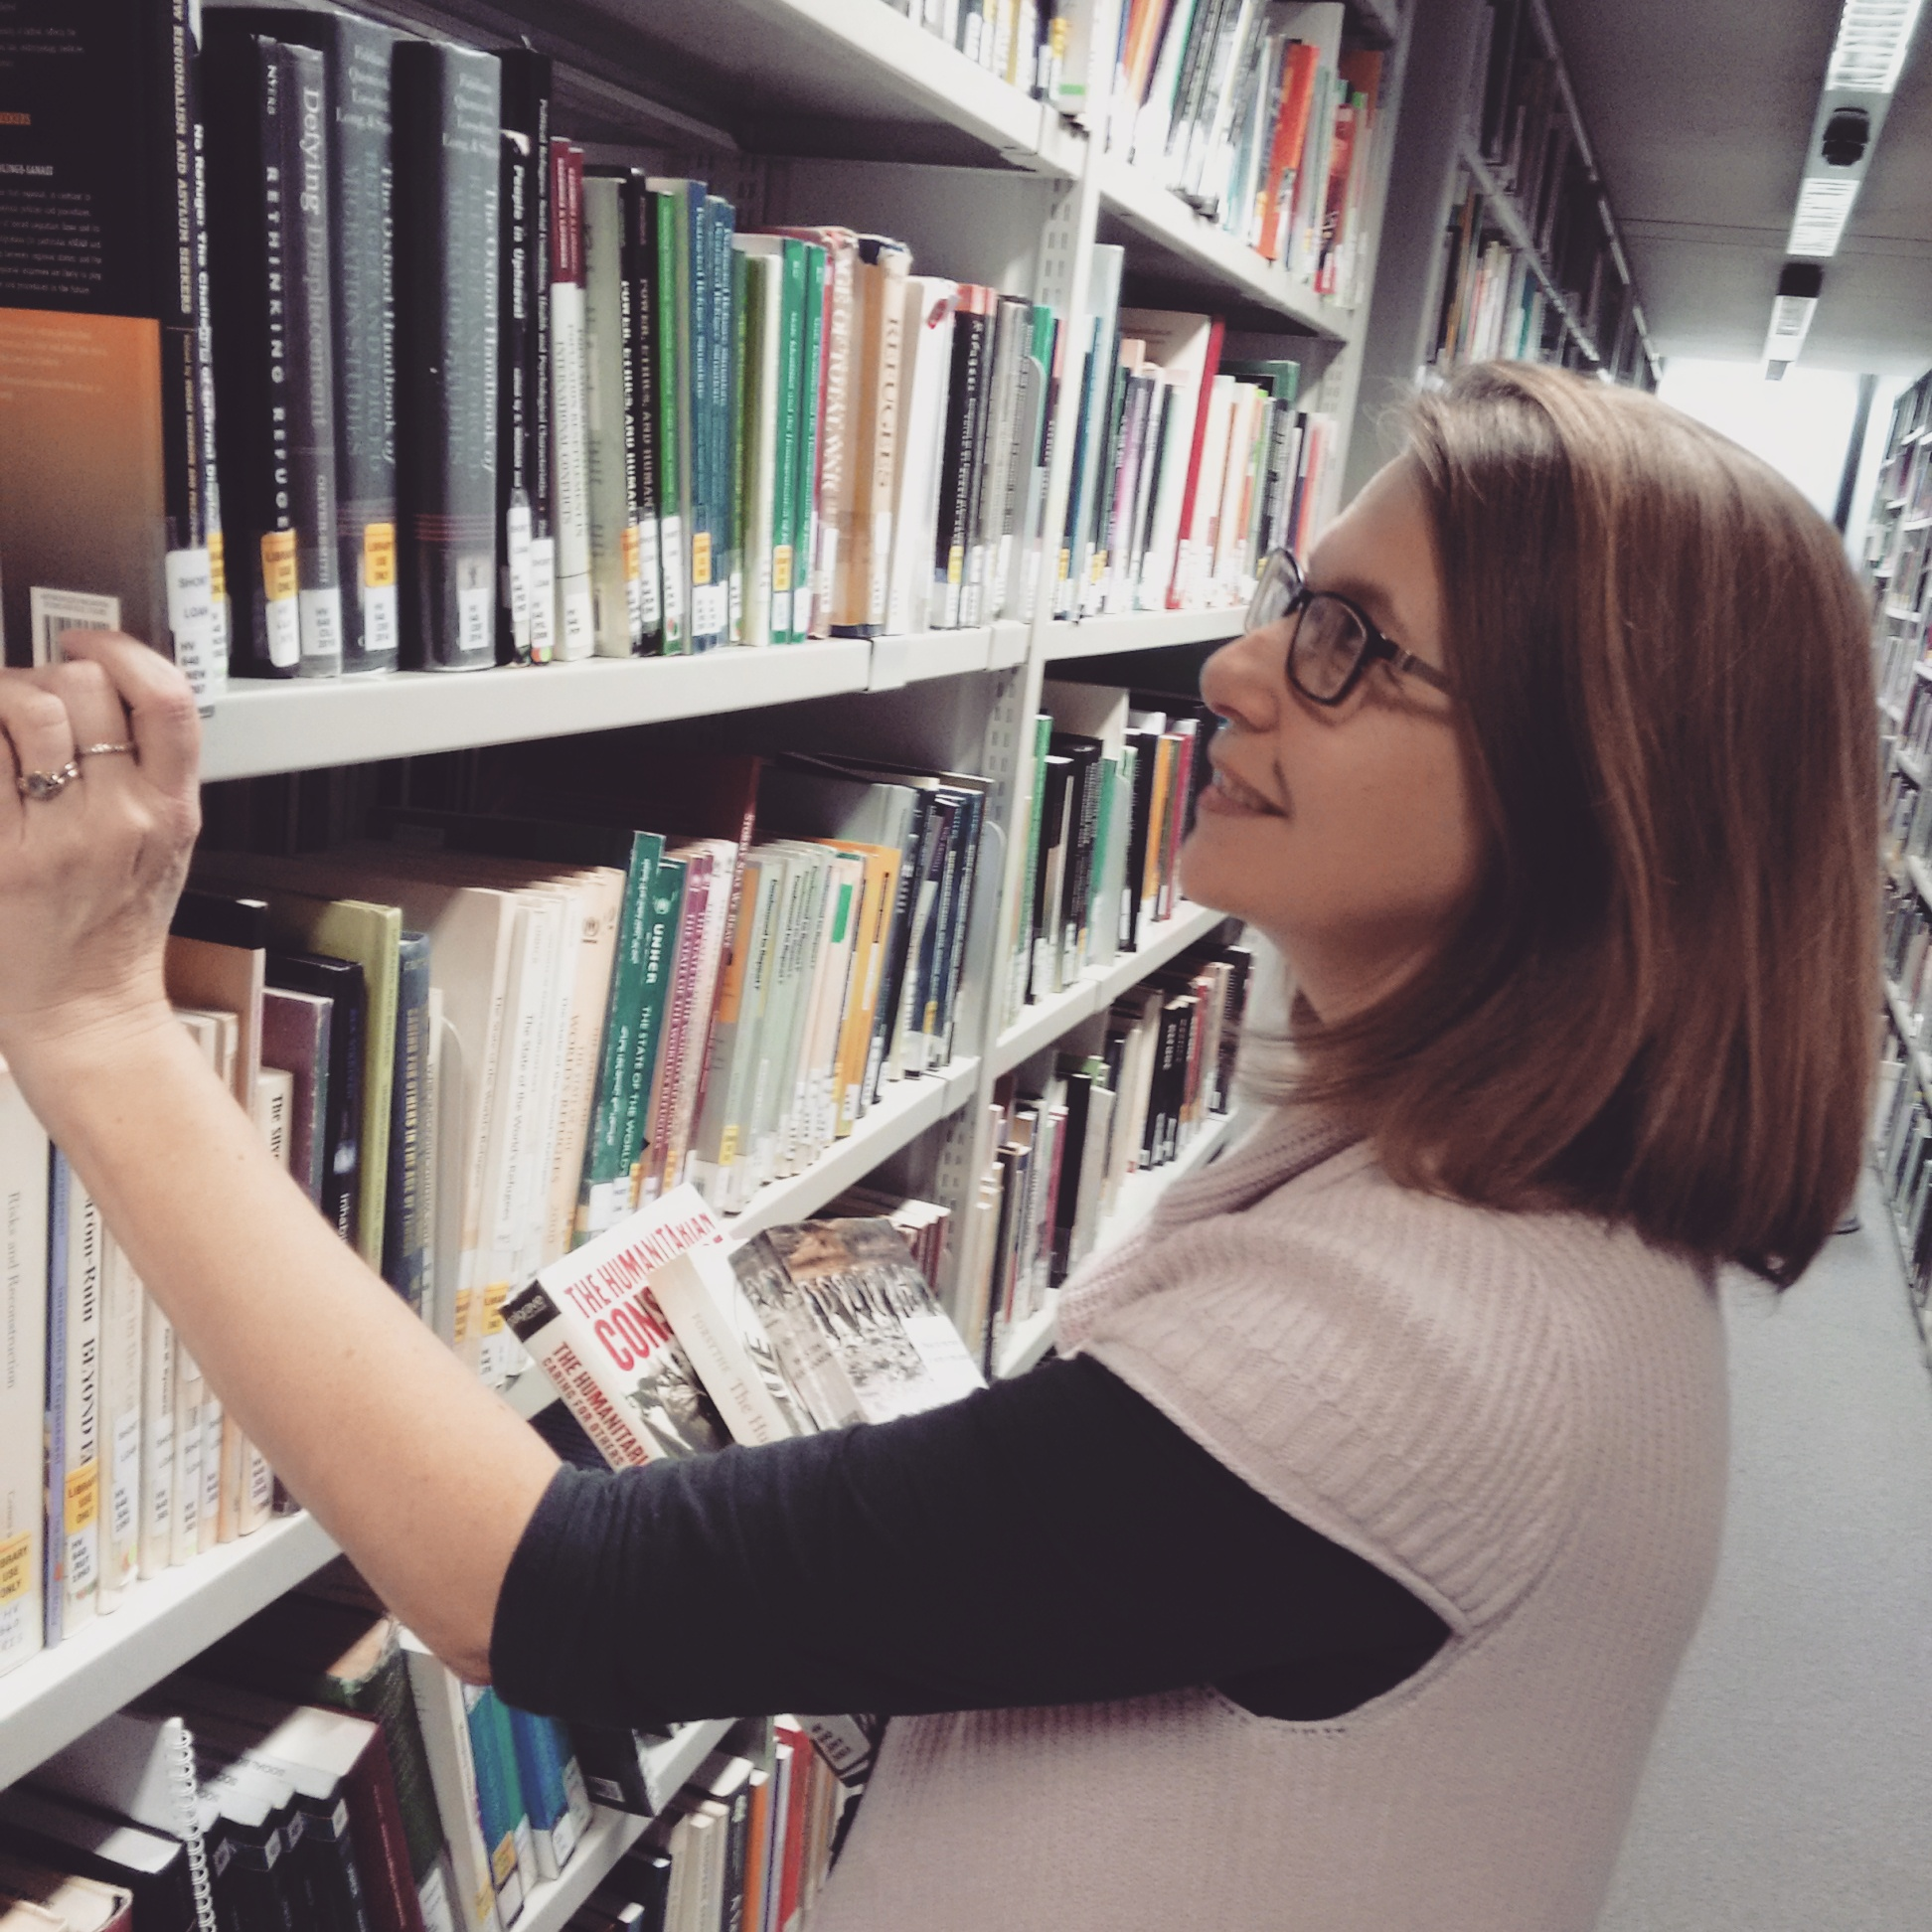 Image of Subject Consultant Sarah Rhodes selecting books from the book shelves in the Bodleian Social Science Library